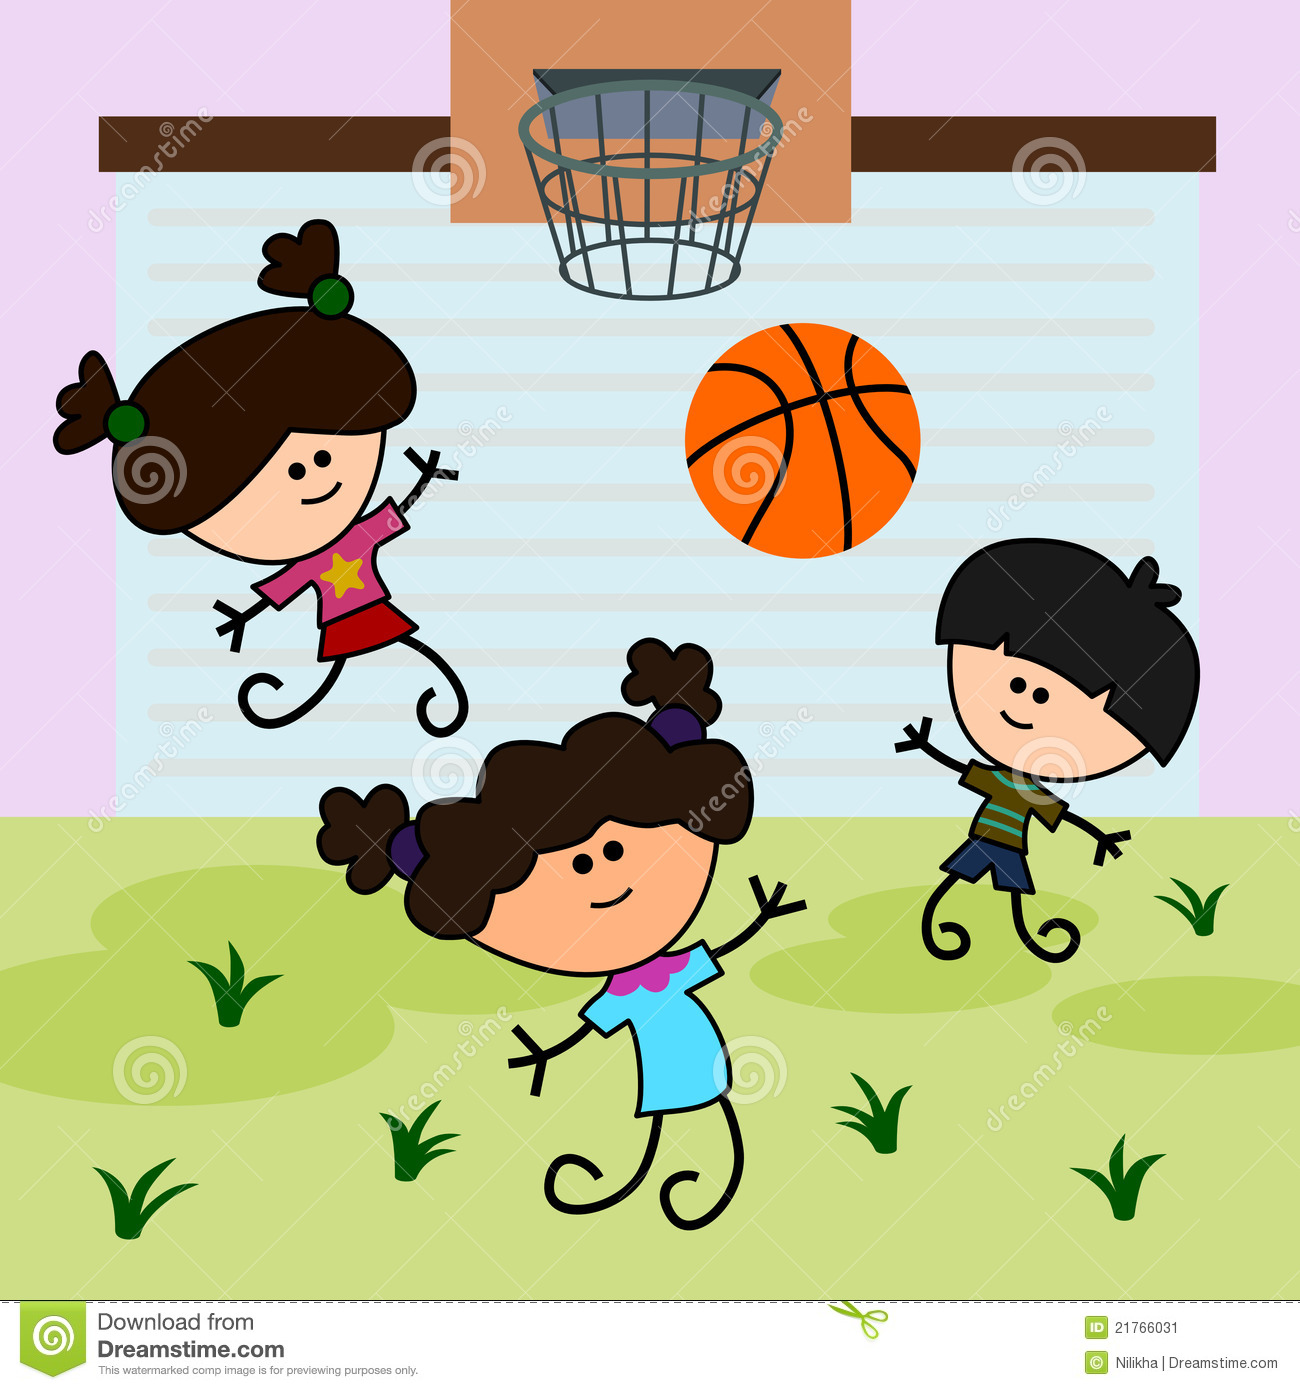 More similar stock images of ` Kids play basketball `